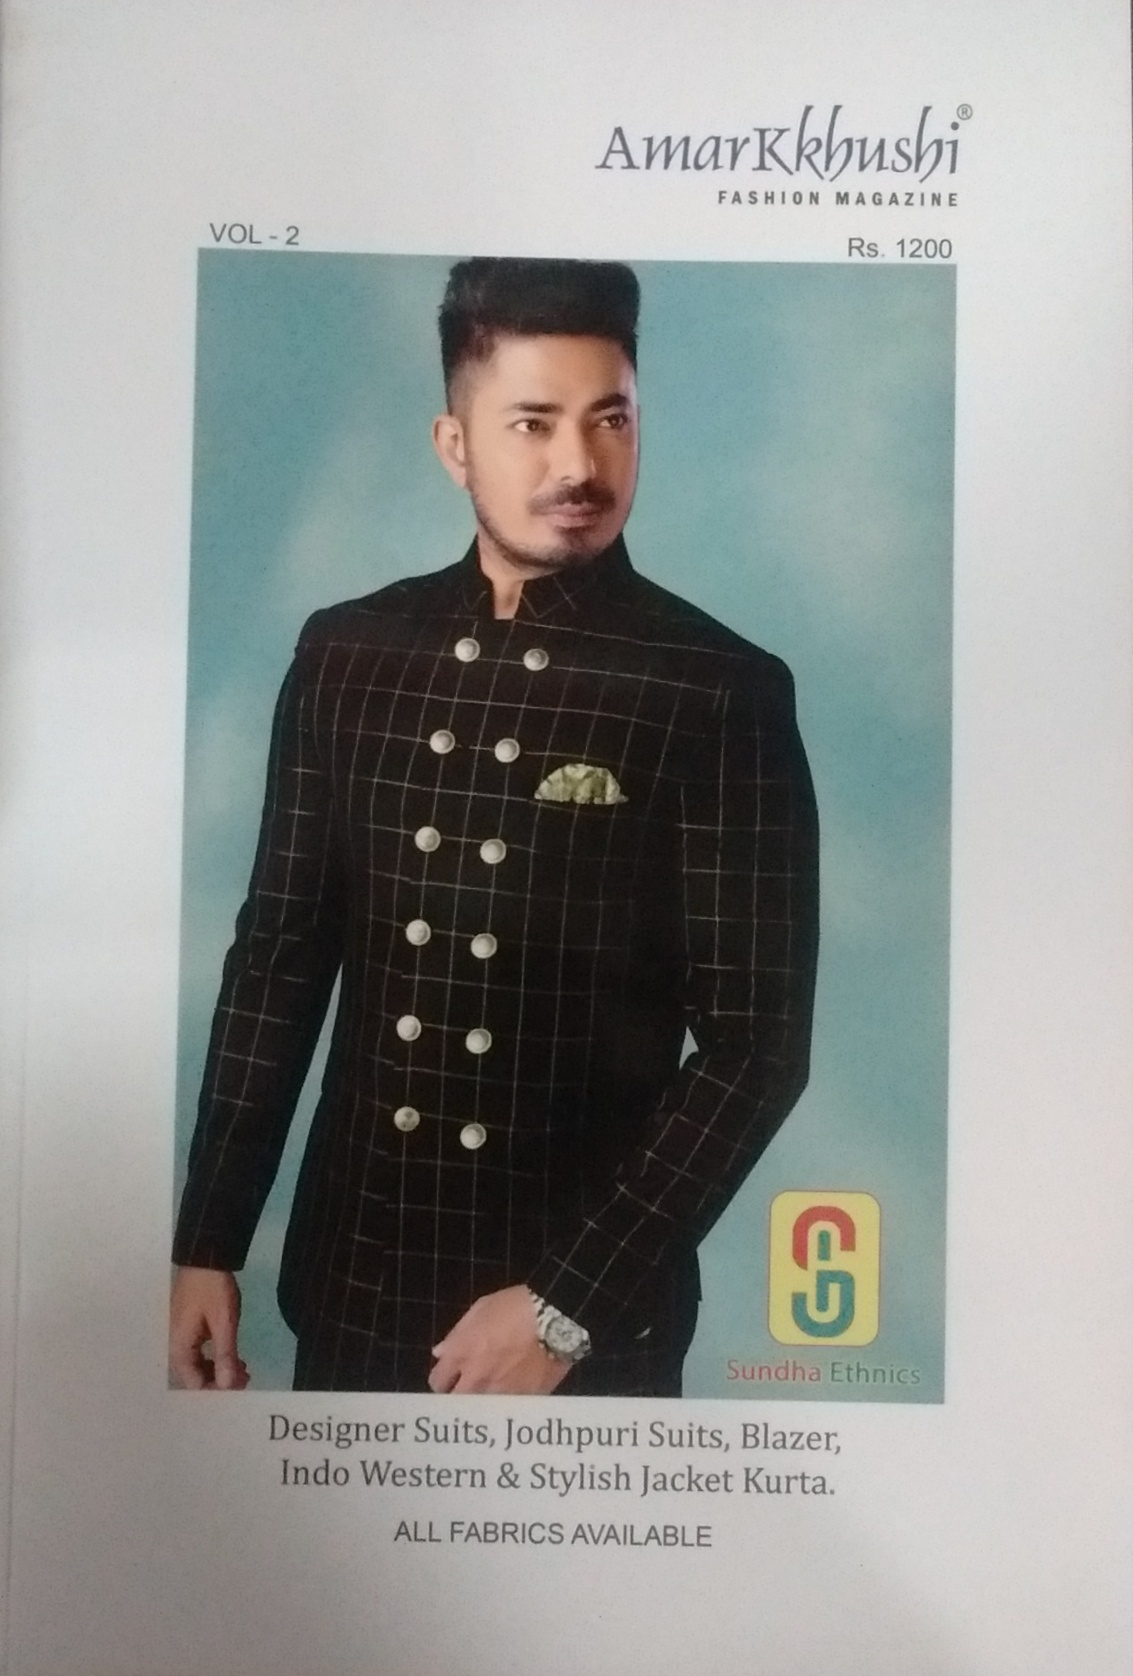 Home Fashion Designing Amarkkhushi Magazine Designer Suits Jodhpuri Blazer Indo Western Stylish Jacket Kurta All Fabrics Available